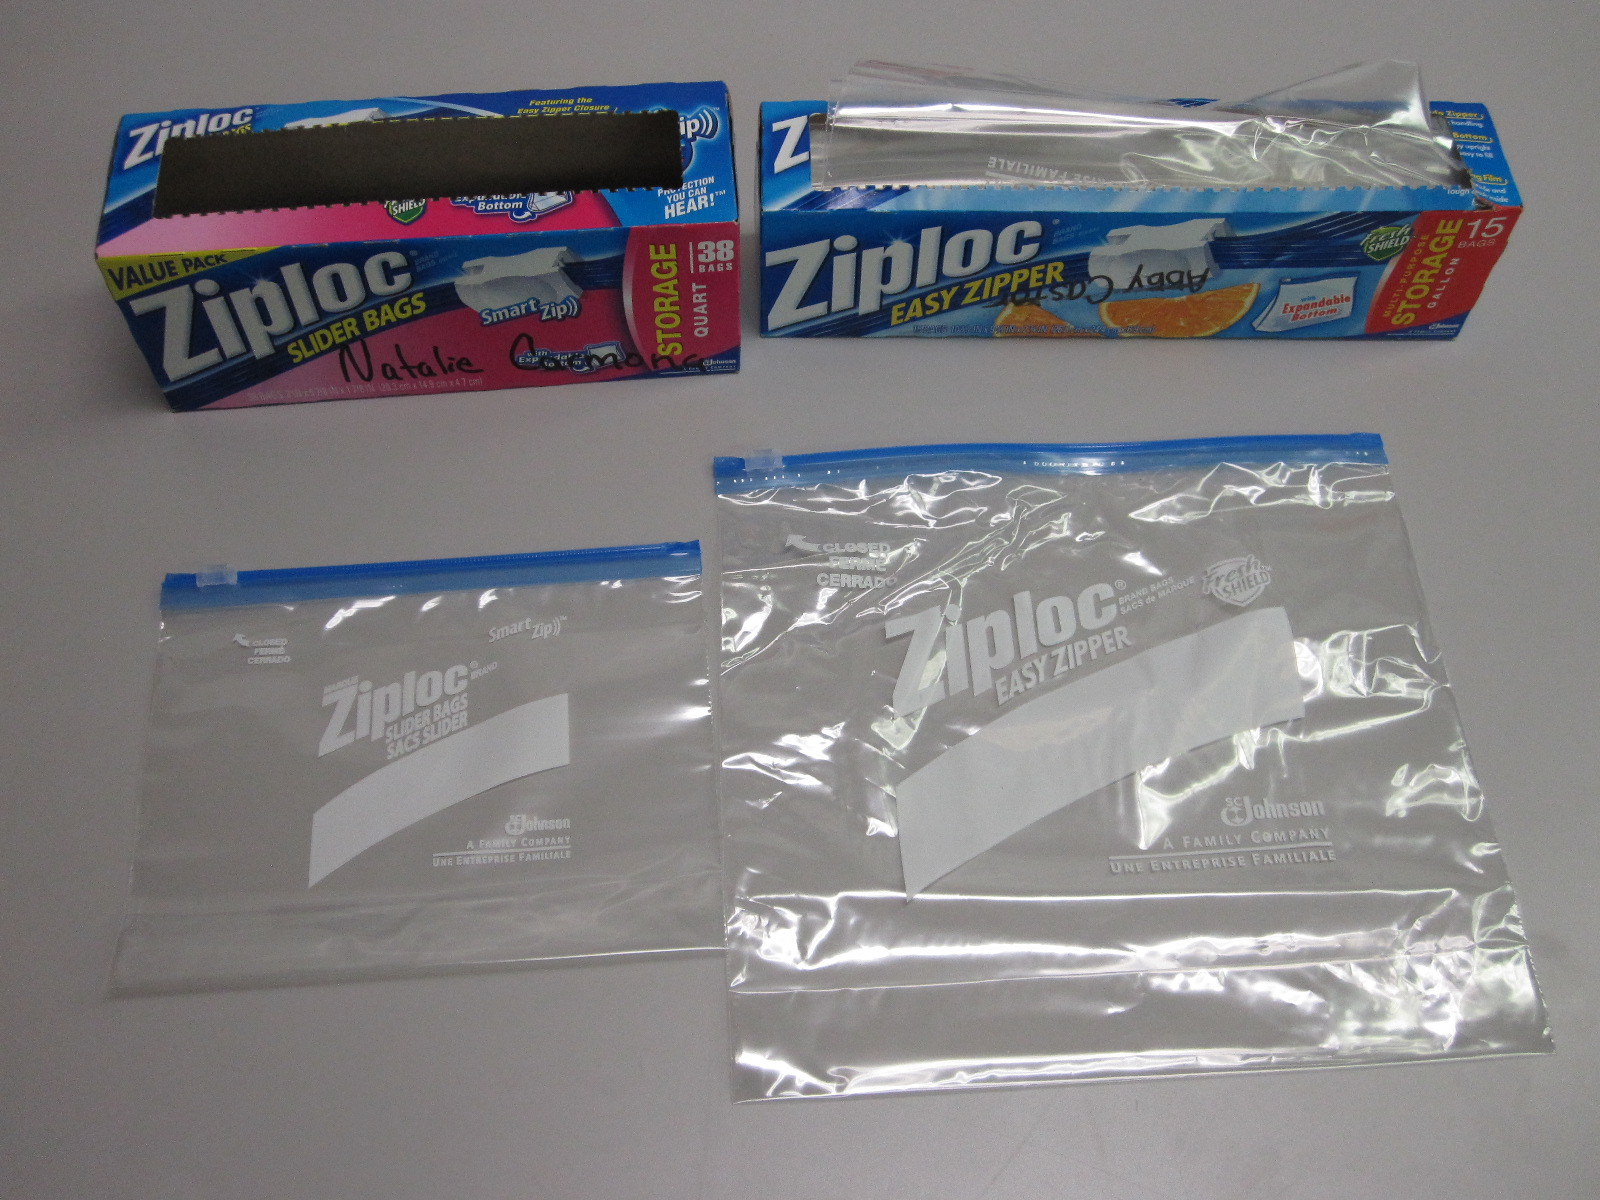 1 quart ziploc bag dimensions pictures to pin on